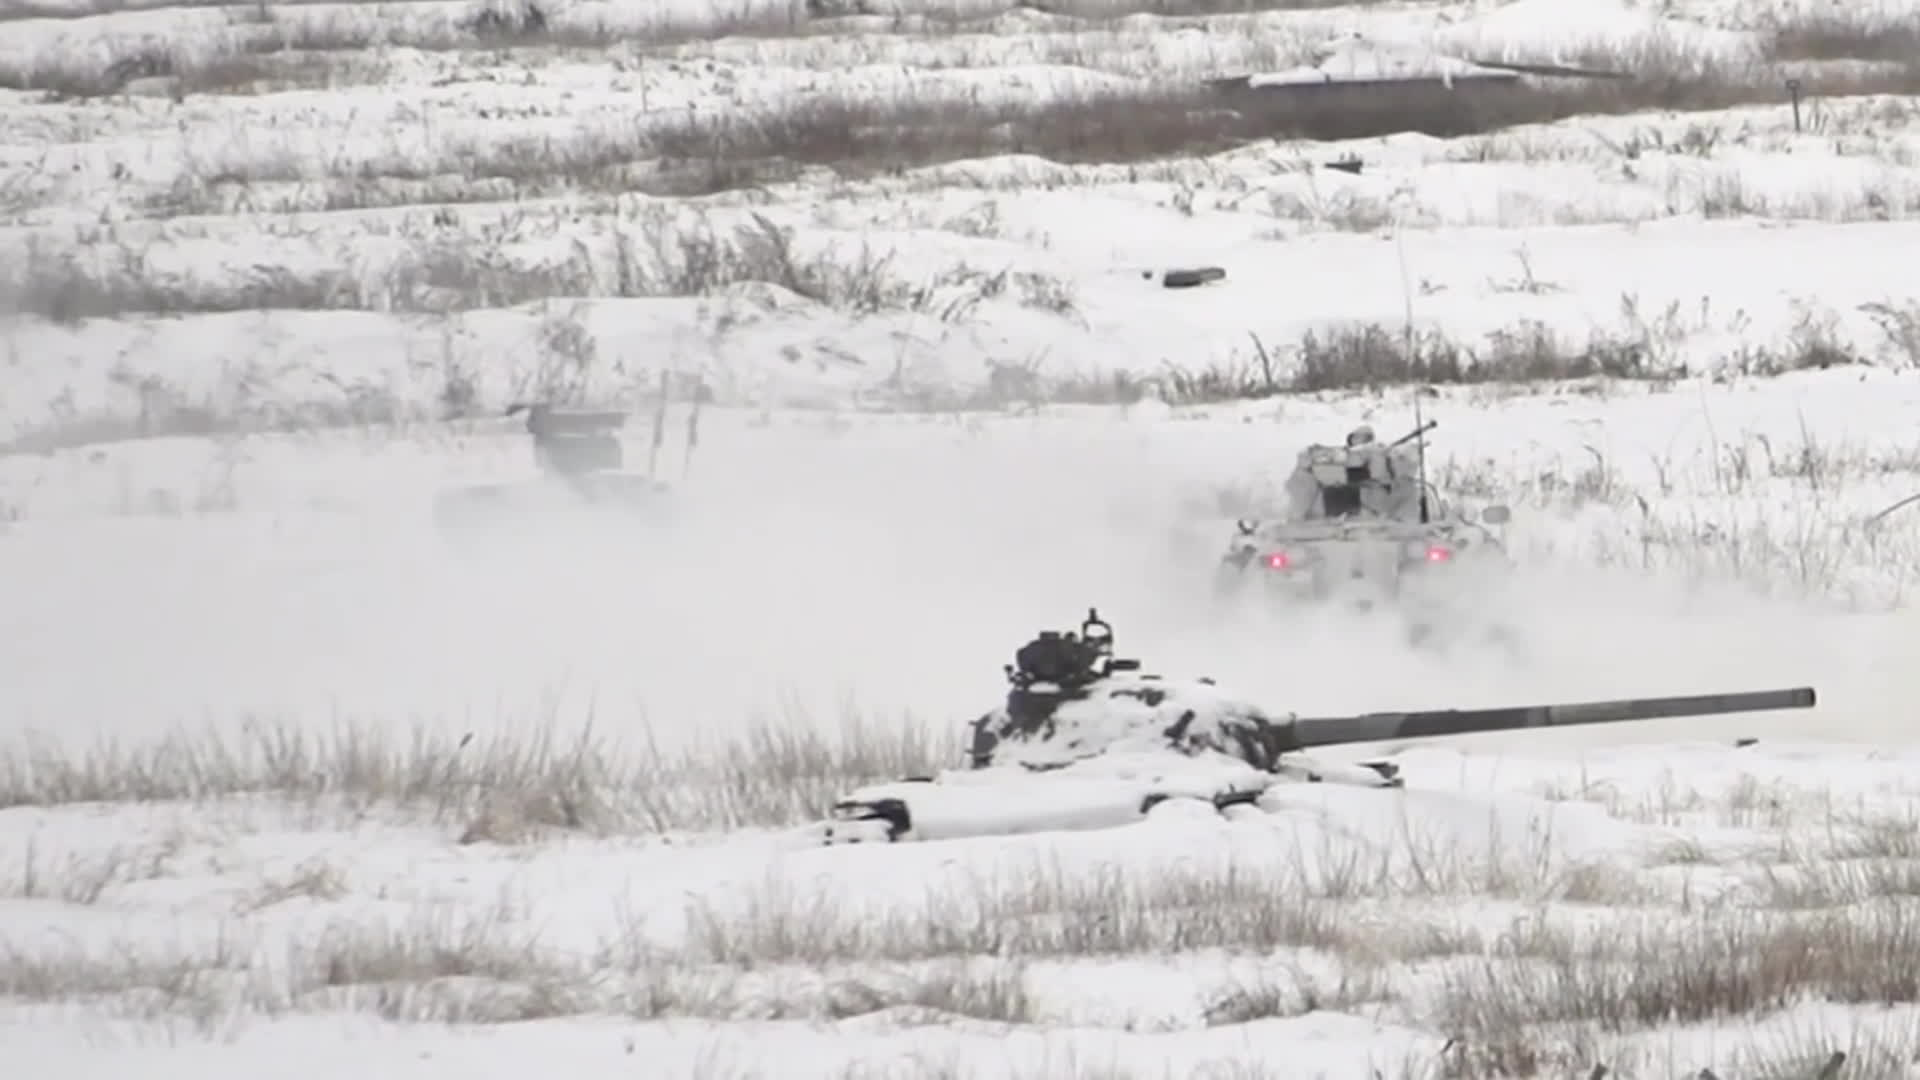 MilitaryGfys, imagesofrussia, Russian Motorized Infantry practice tactical snowfort fights using military robots GIFs